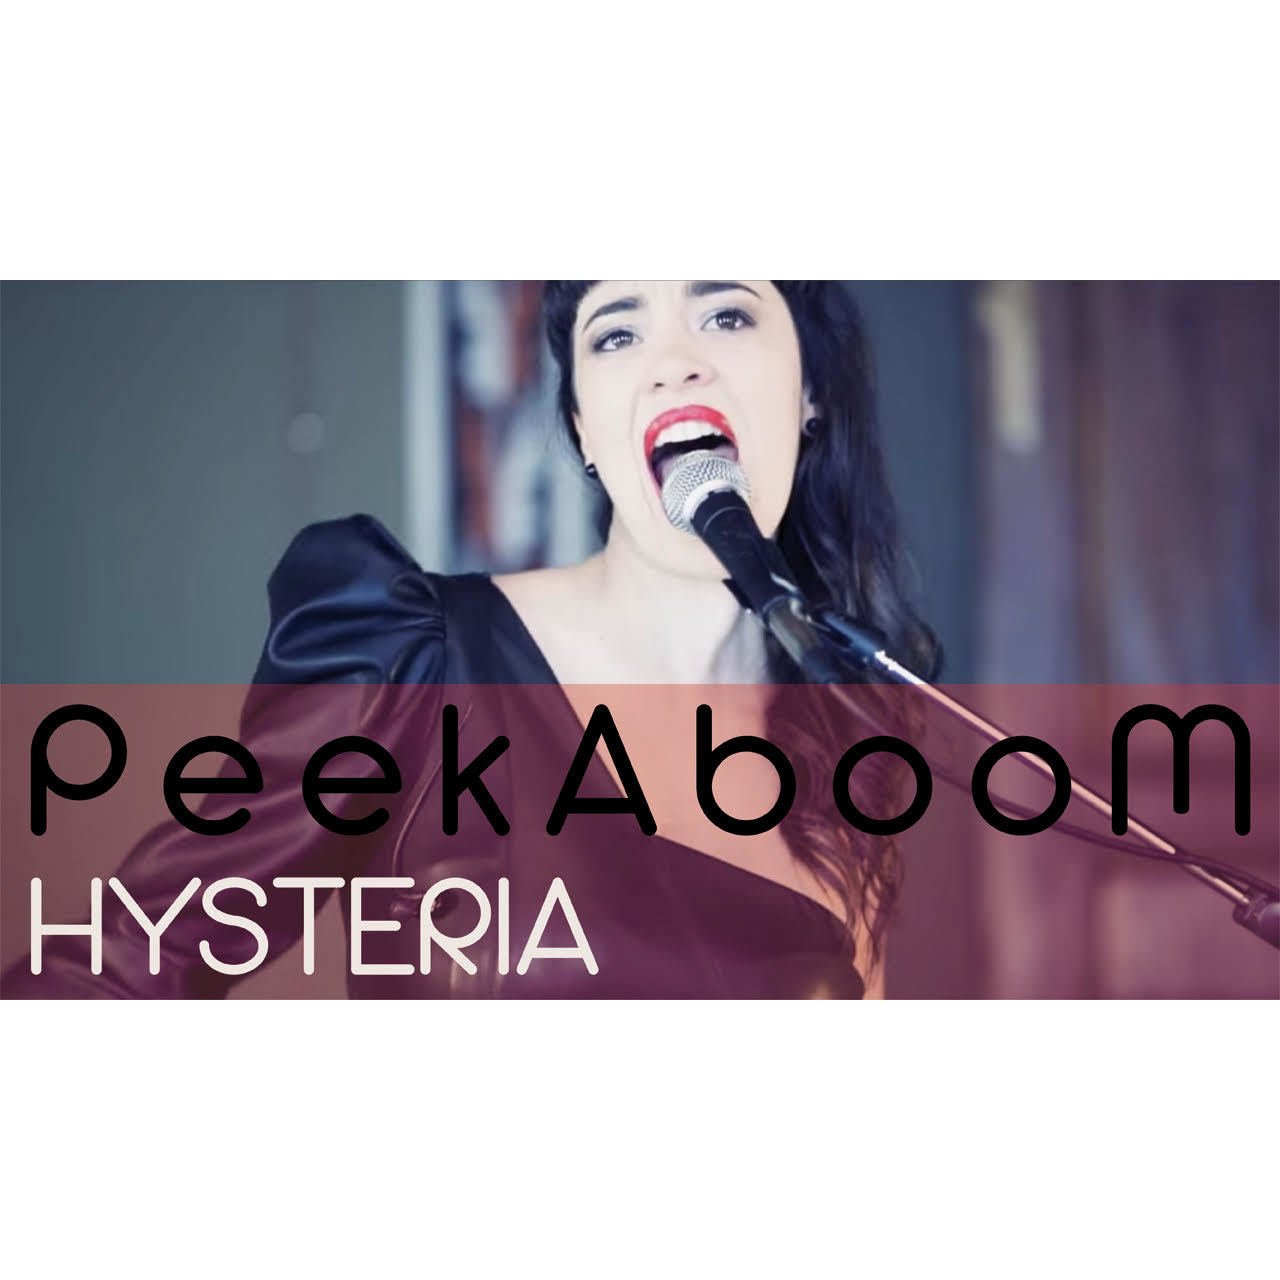 Hysteria - Peekaboom & Valerio Fuiano (Muse Cover w/GeoShred) - MP3 Single 00006